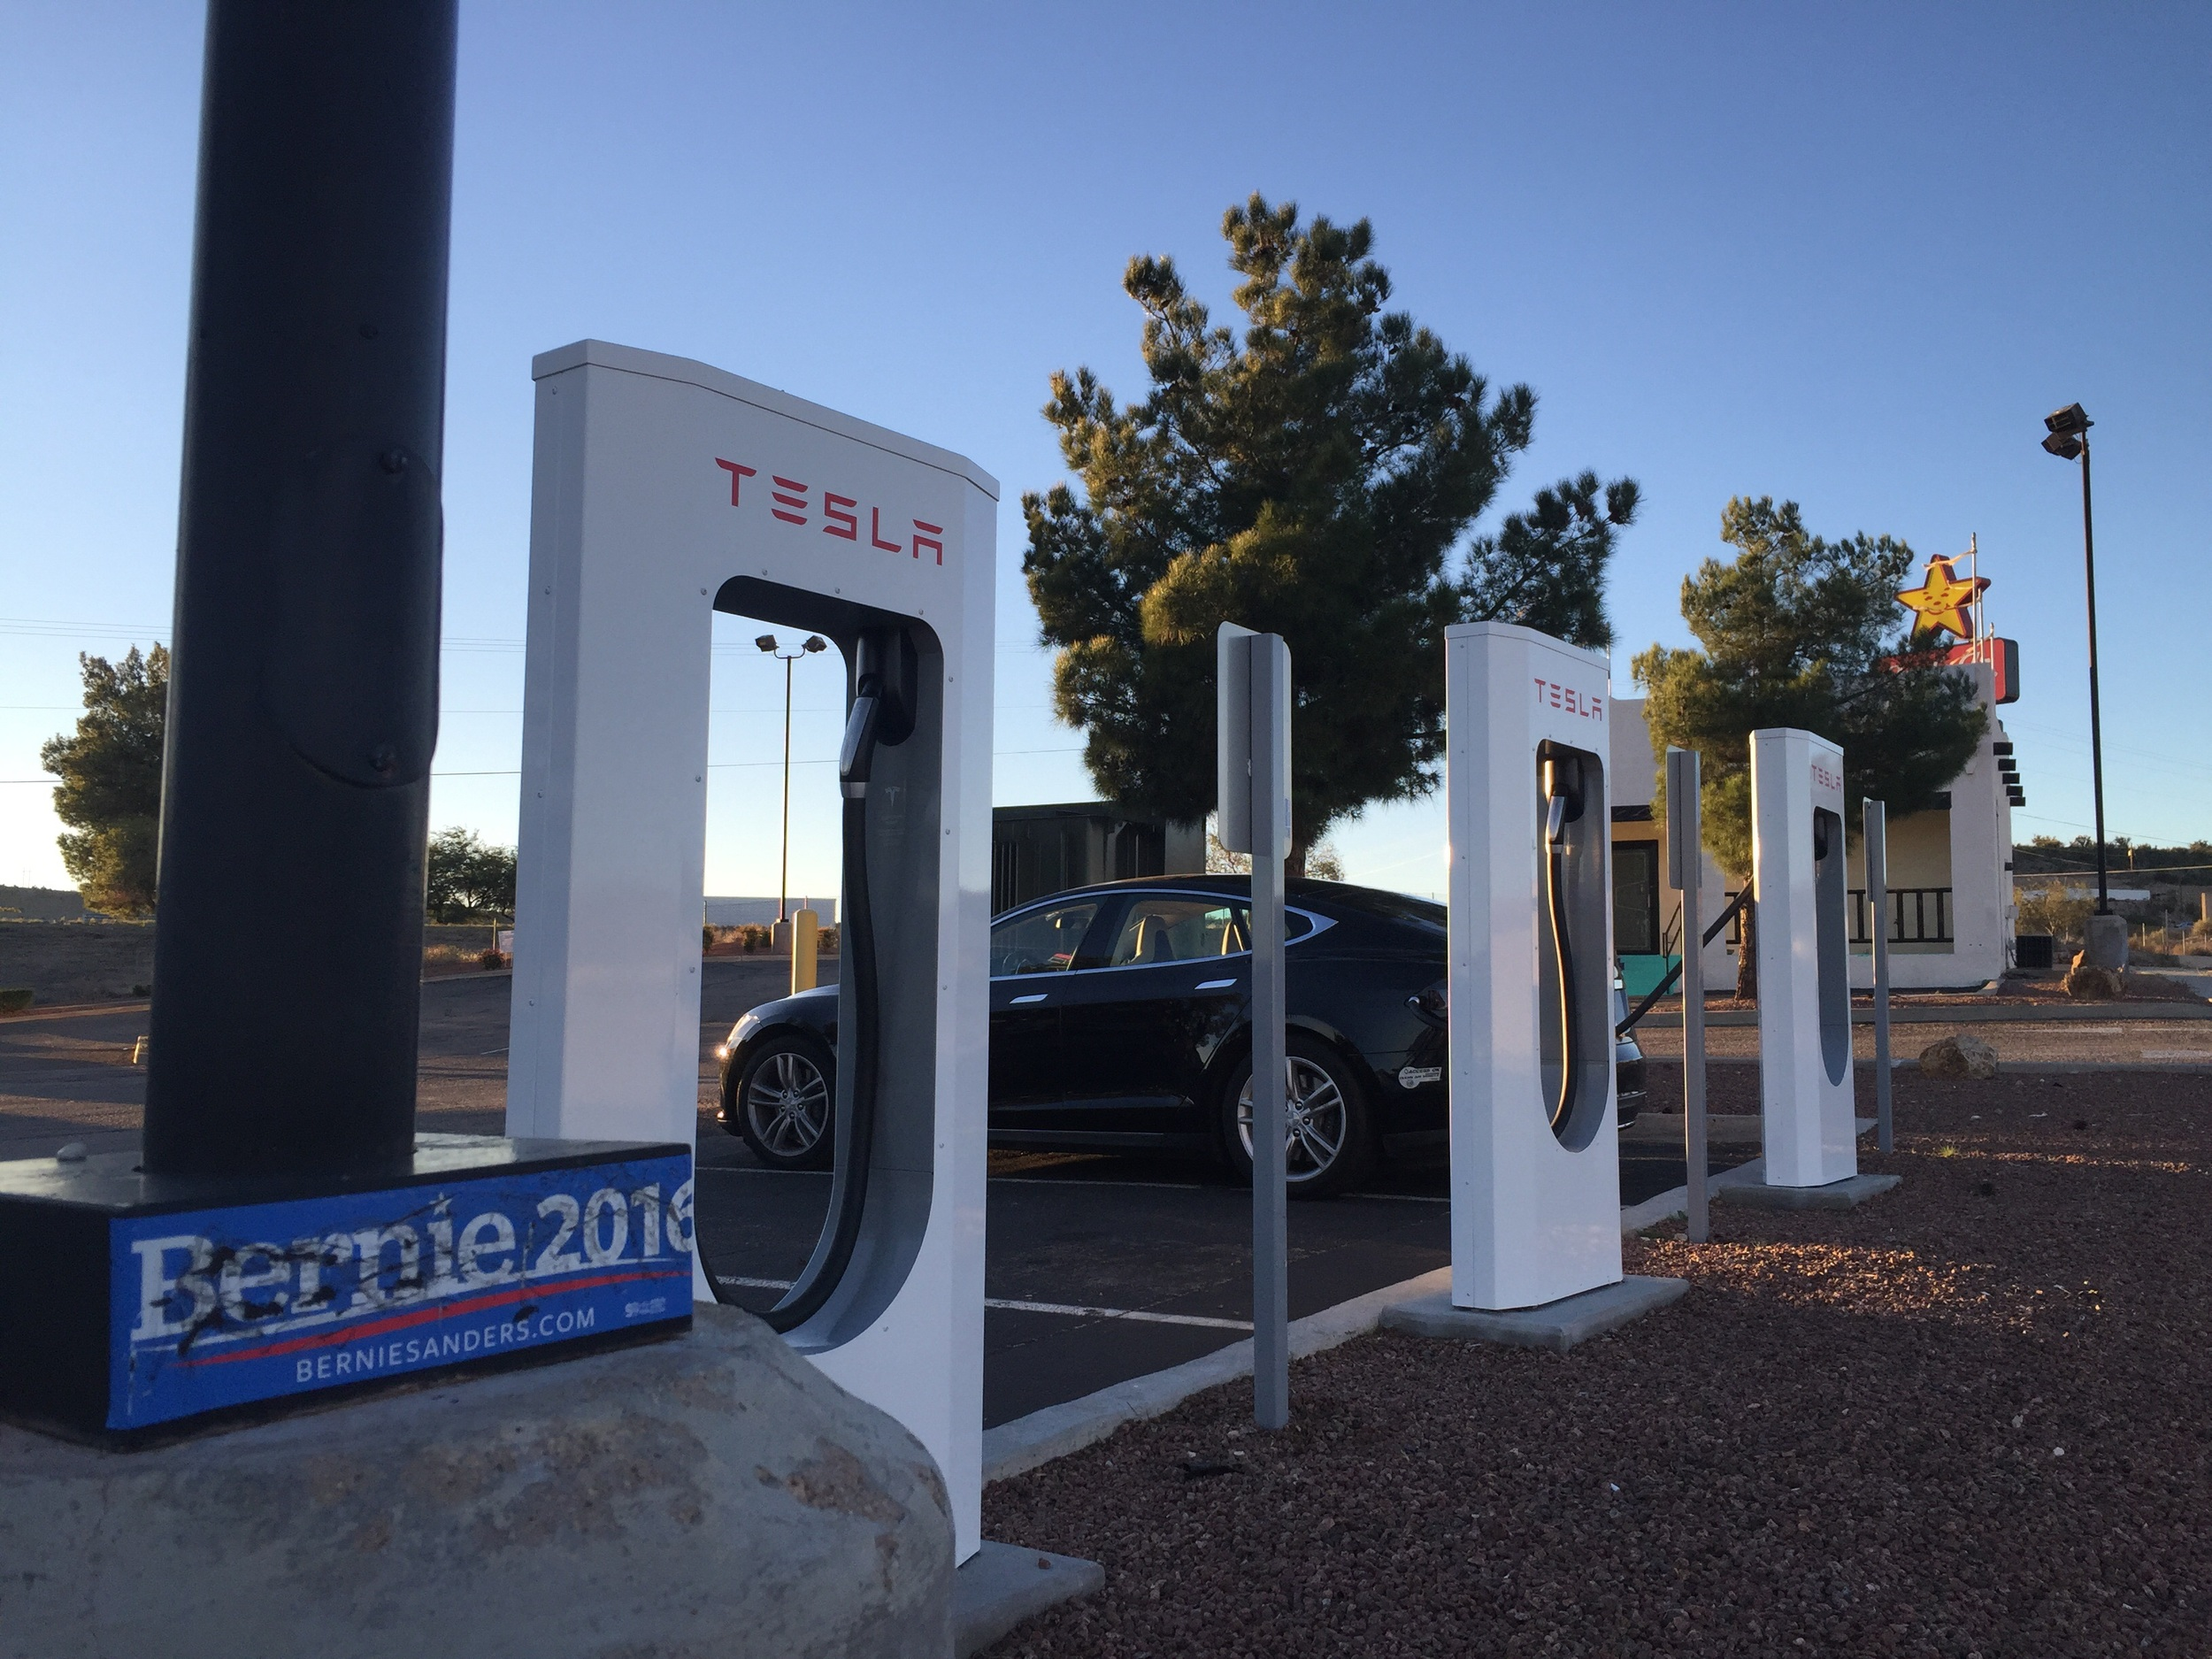 Apparently folks in Kingman, Arizona are excited for the upcoming election. Feel the Bern!!